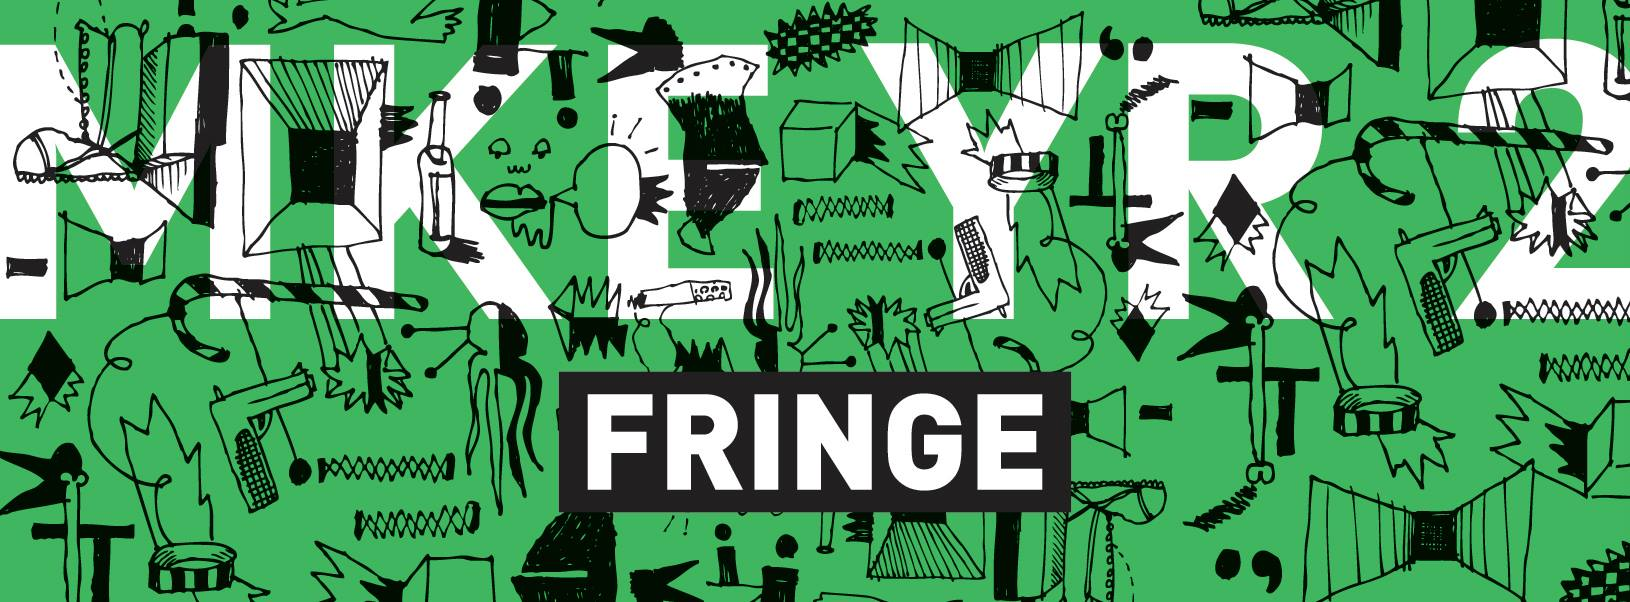 Milwaukee Fringe Festival Coming This Weekend, August 26-27